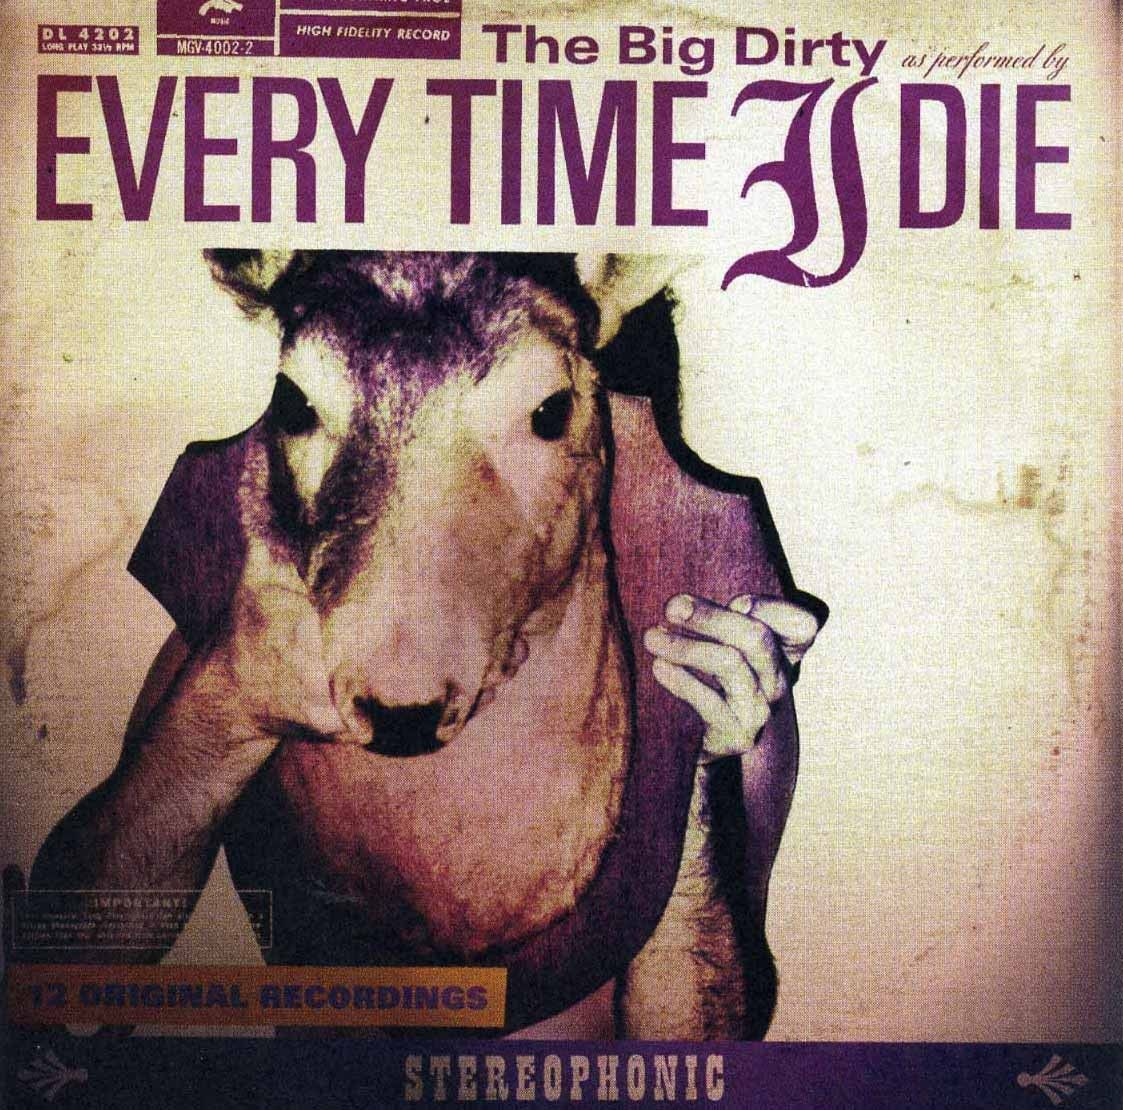 Every Time I Die - The Big Dirty